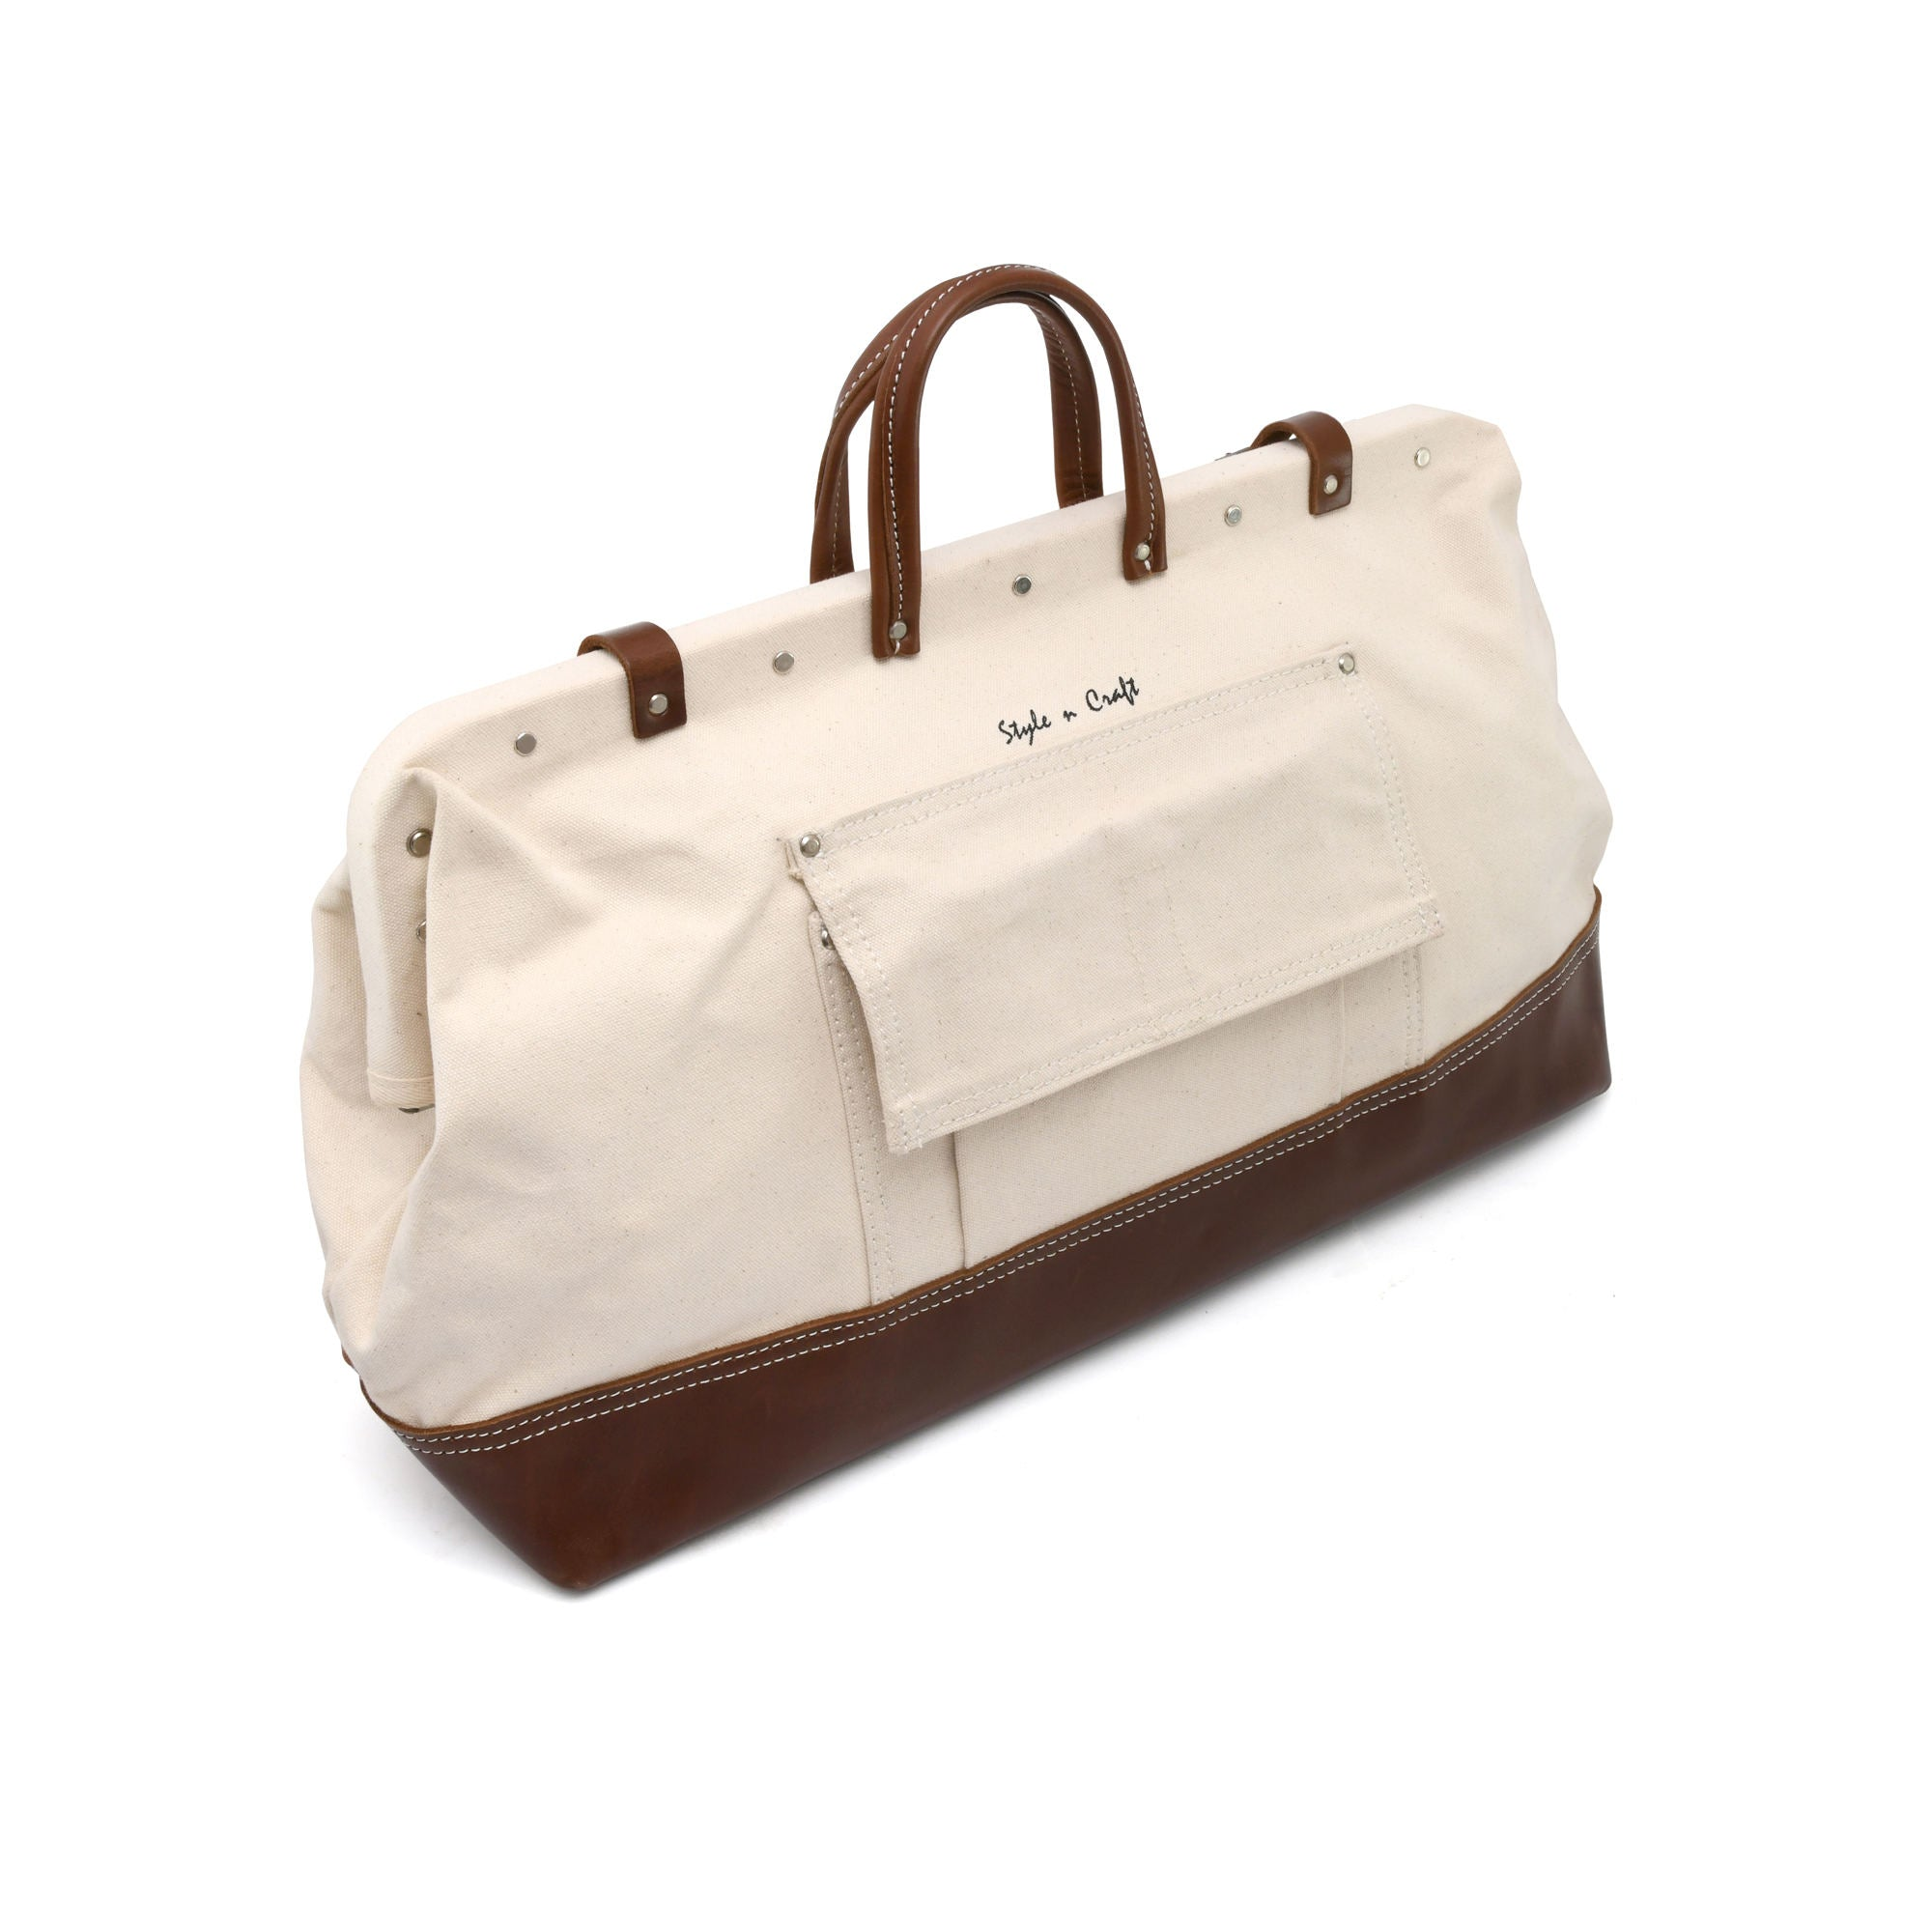 Style n Craft 97517 - 20 Inch Mason's Tool Bag in White Canvas / Dark Tan Top Grain Leather Combination - Back Closed View